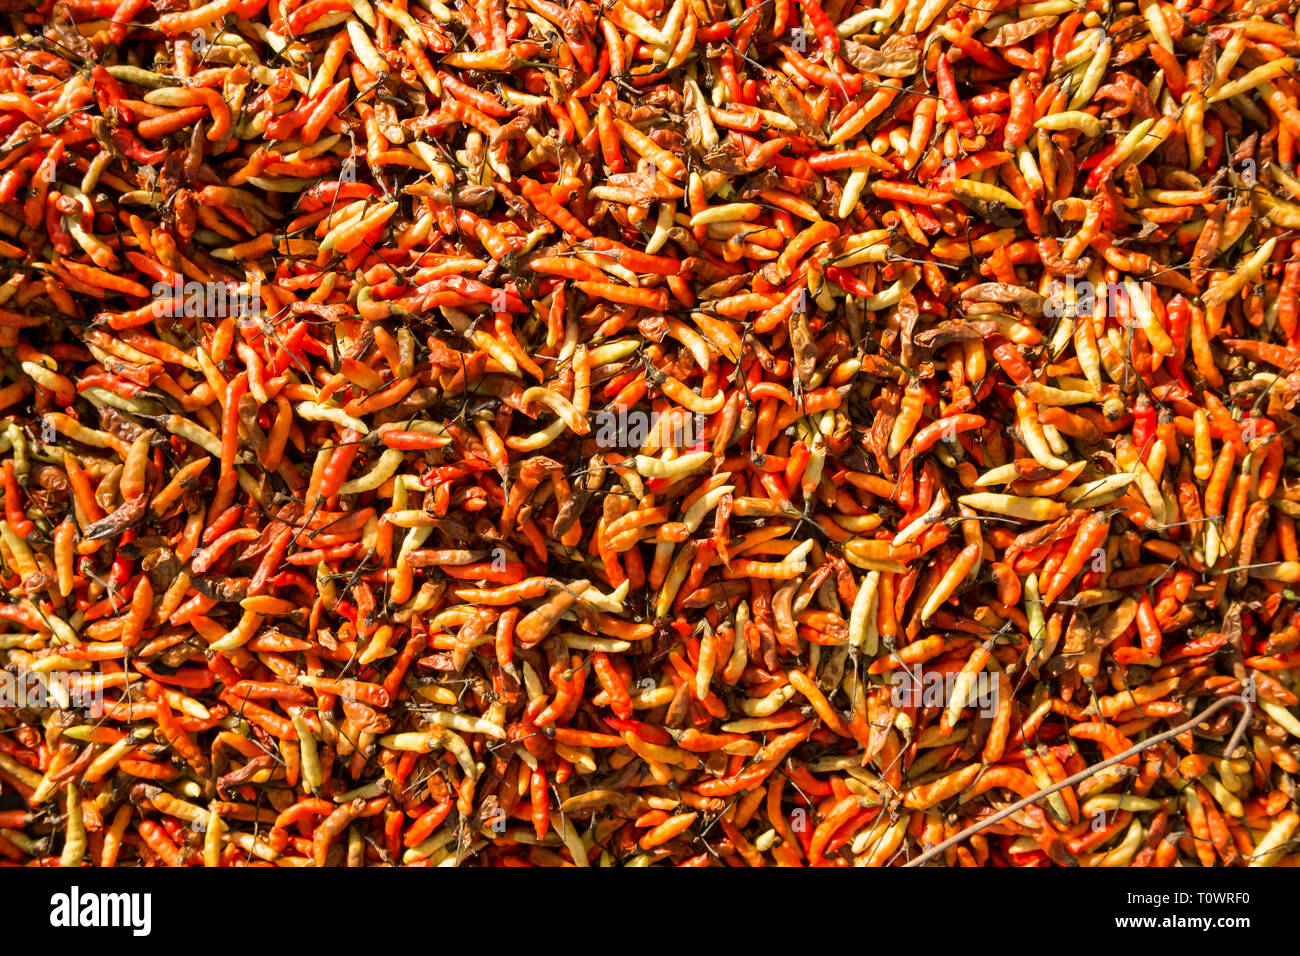 Fresh chili peppers, laid out in the setting sun at a vegetable market in Kota Kinabalu, Sabah, Borneo, Malaysia. - Stock Image